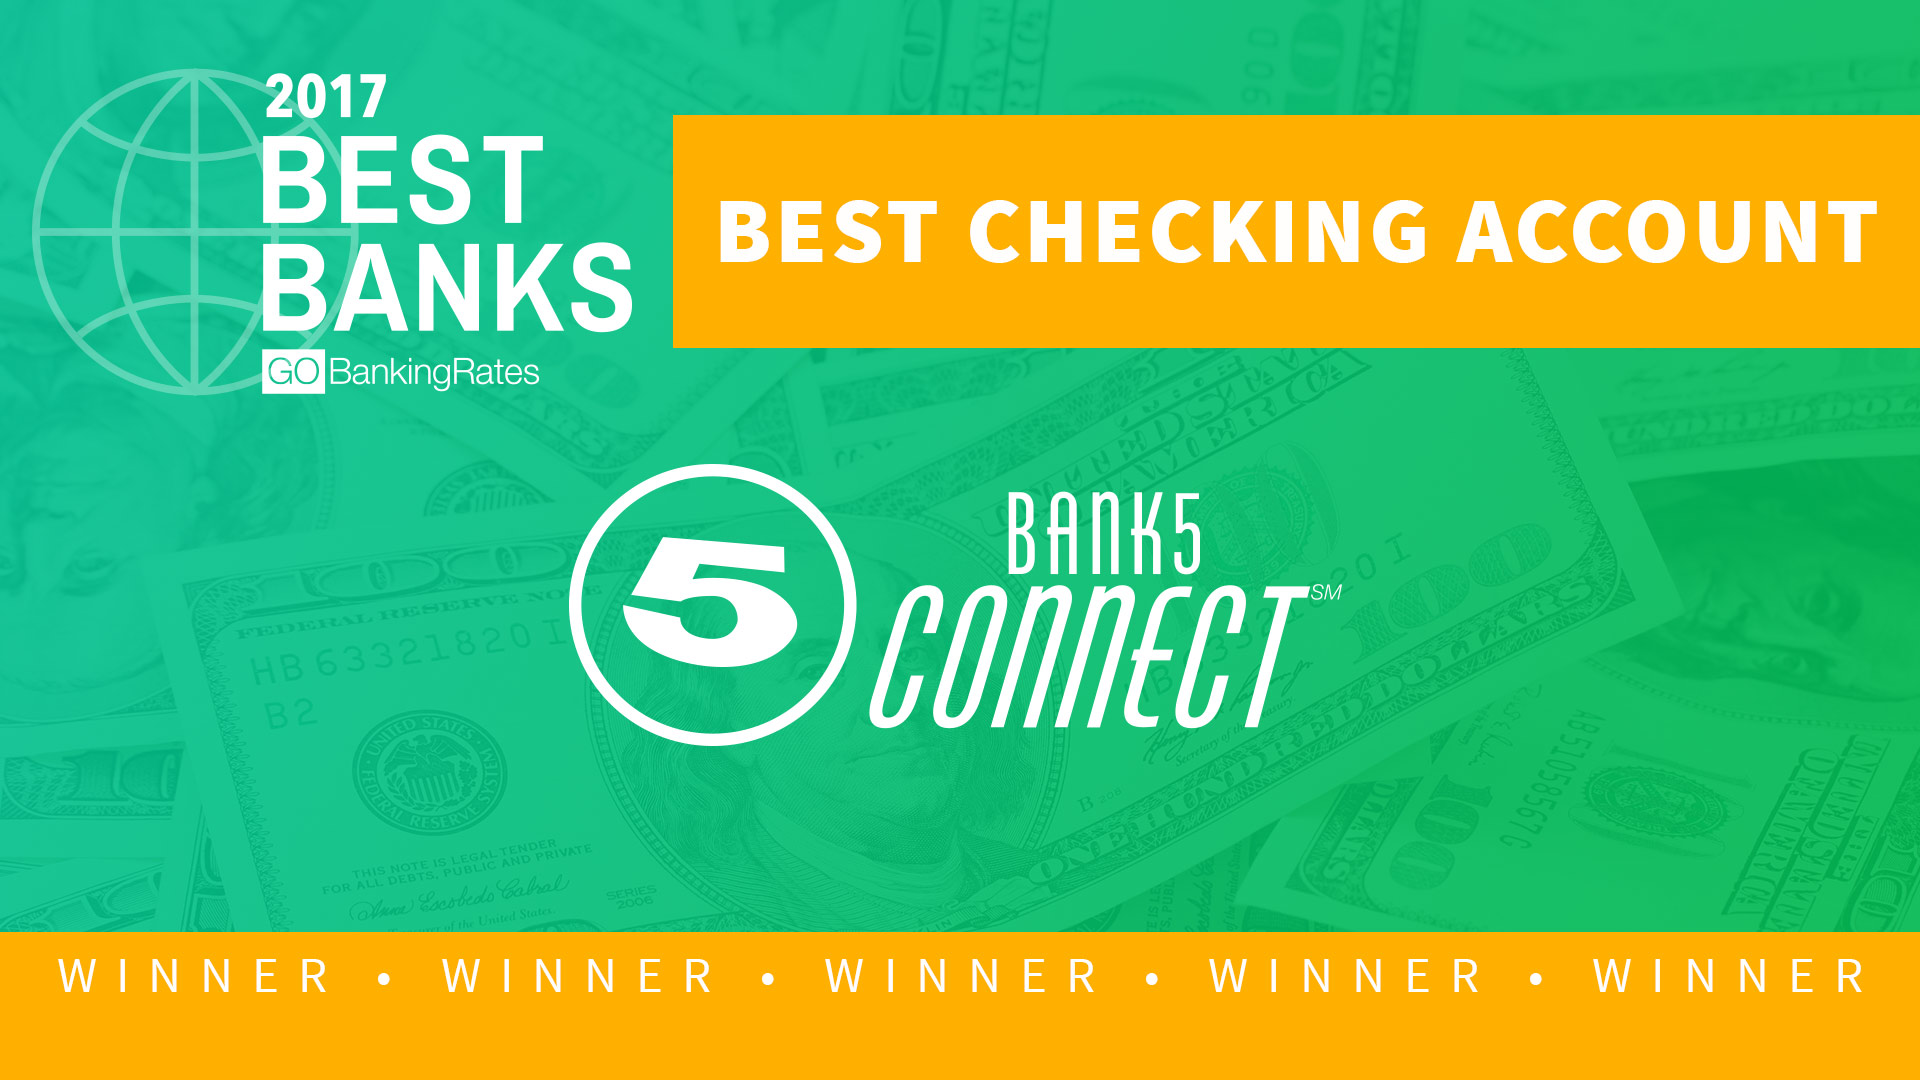 Best Checking Account of 2017: Bank5 Connect | GOBankingRates